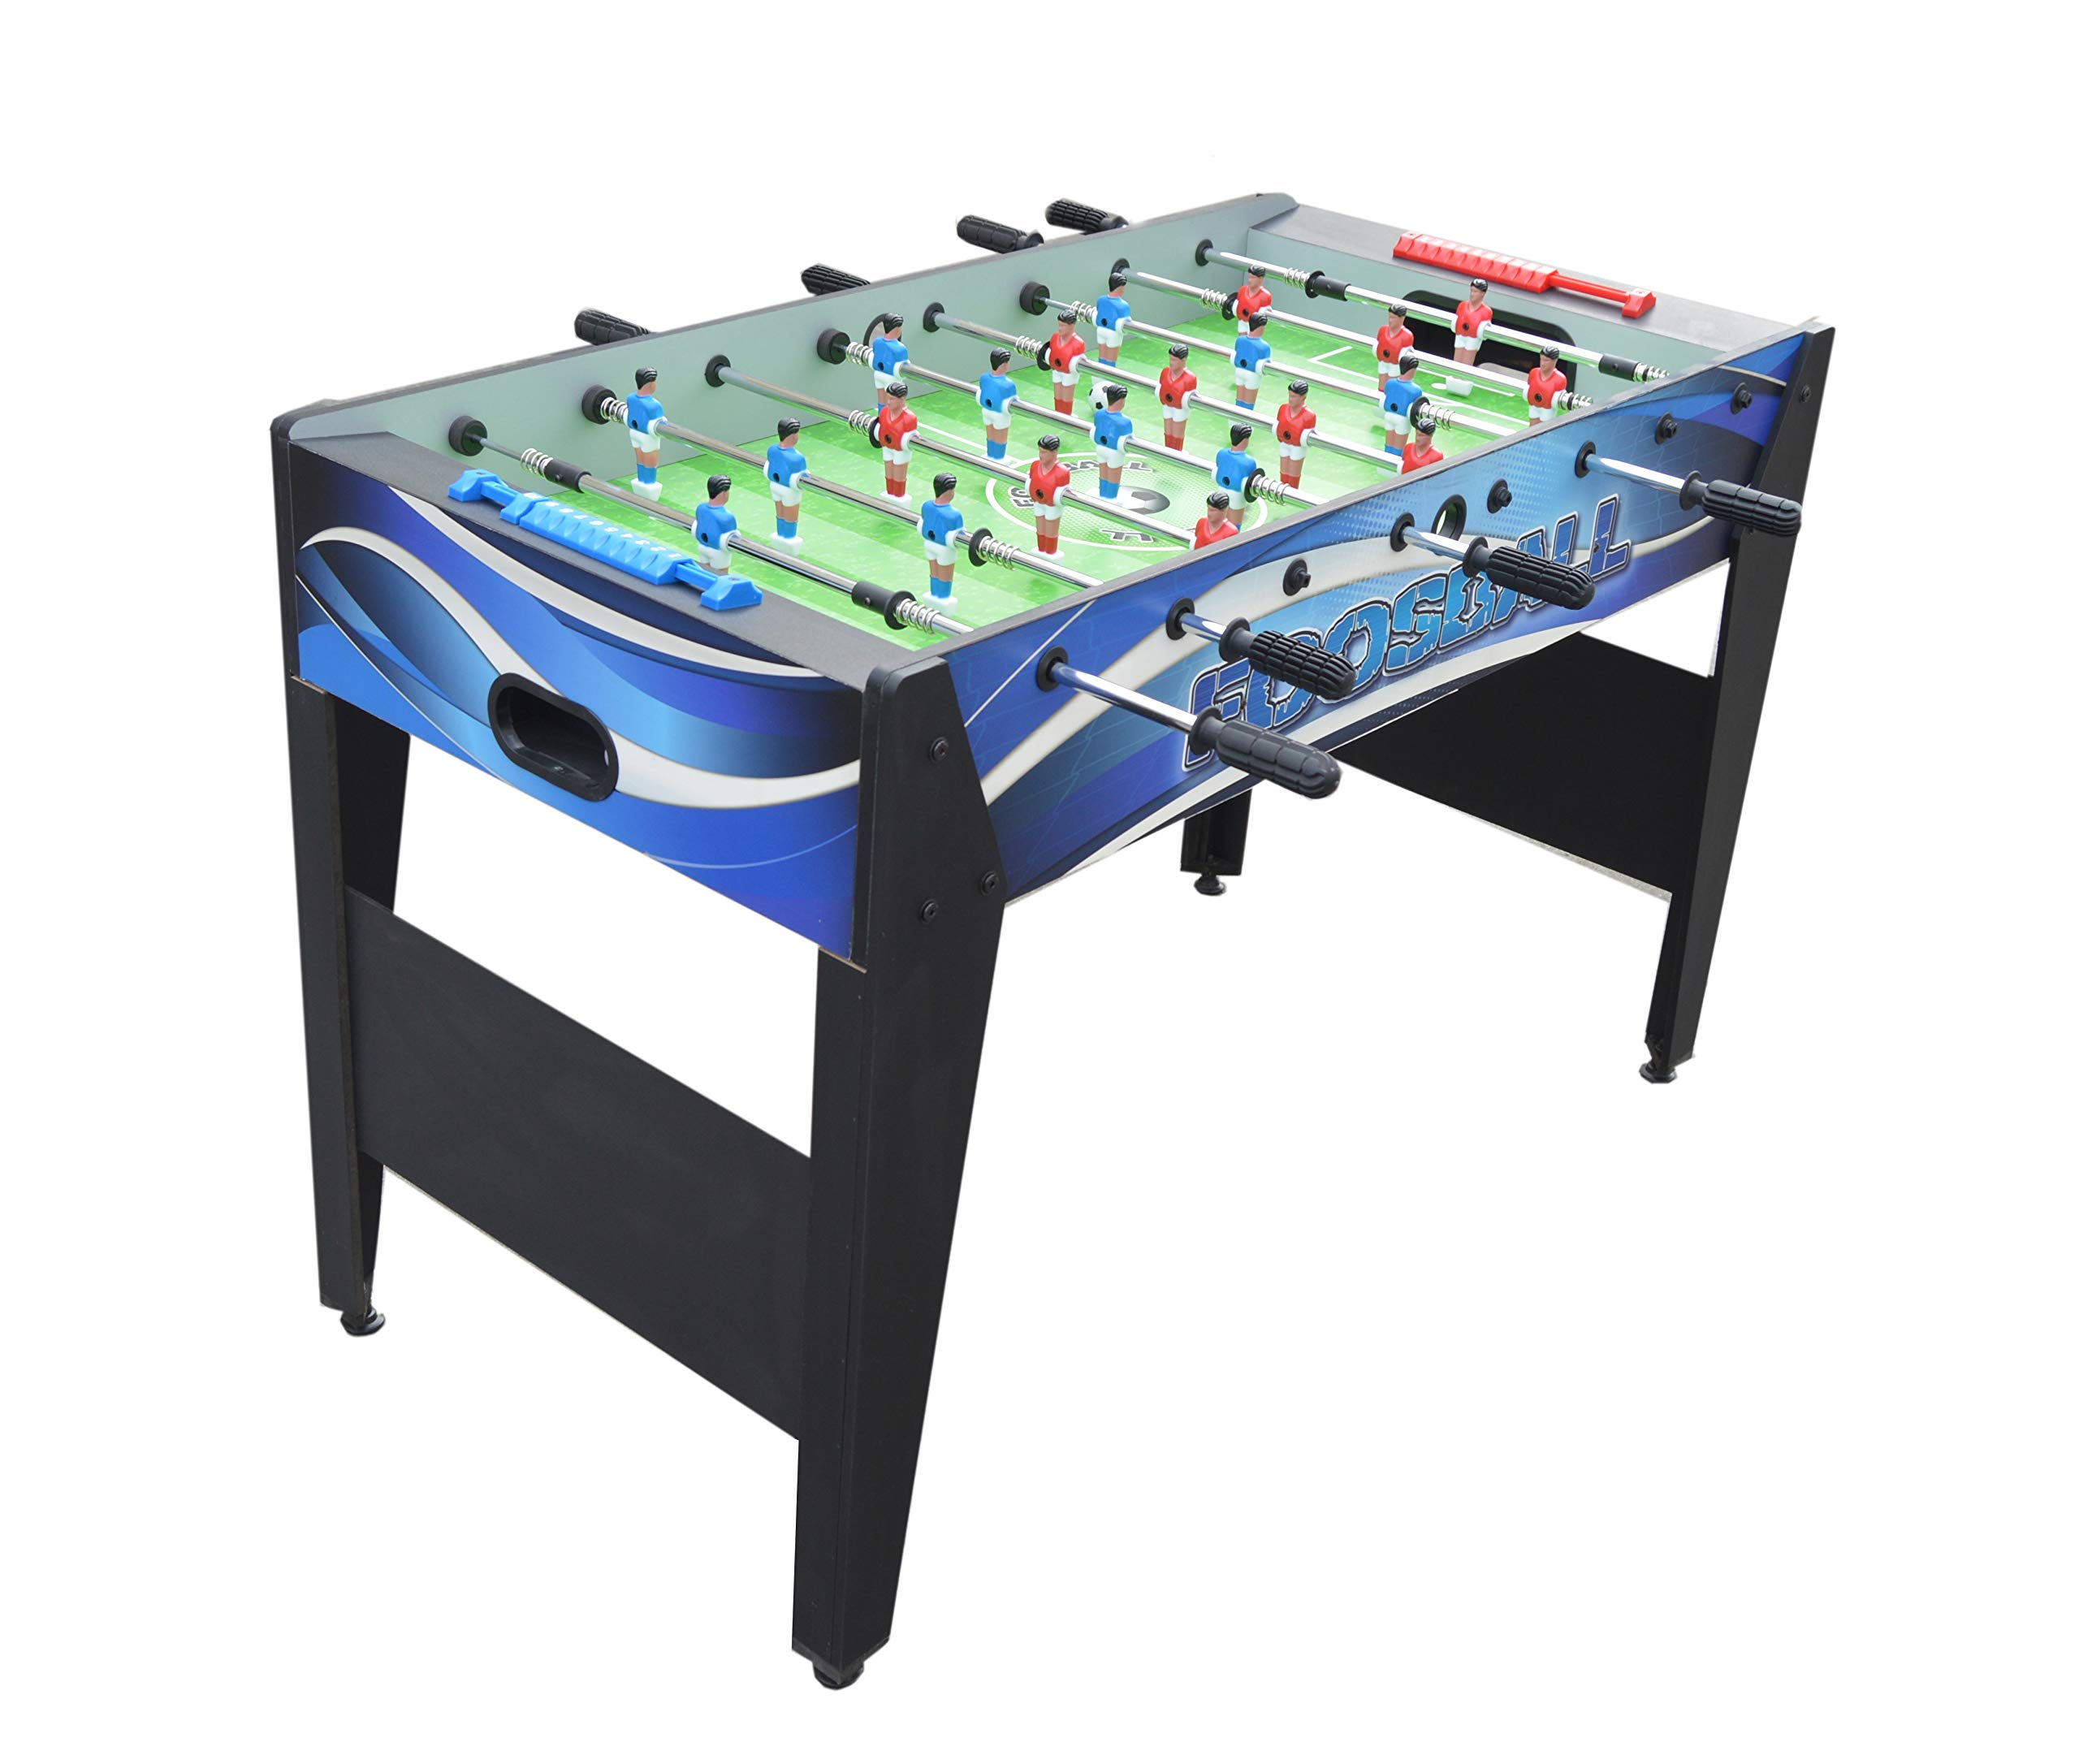 Hathaway Allure 48-in Foosball Table, Blue, 48.5'' L x 24'' W x 31'' H, Black by Hathaway